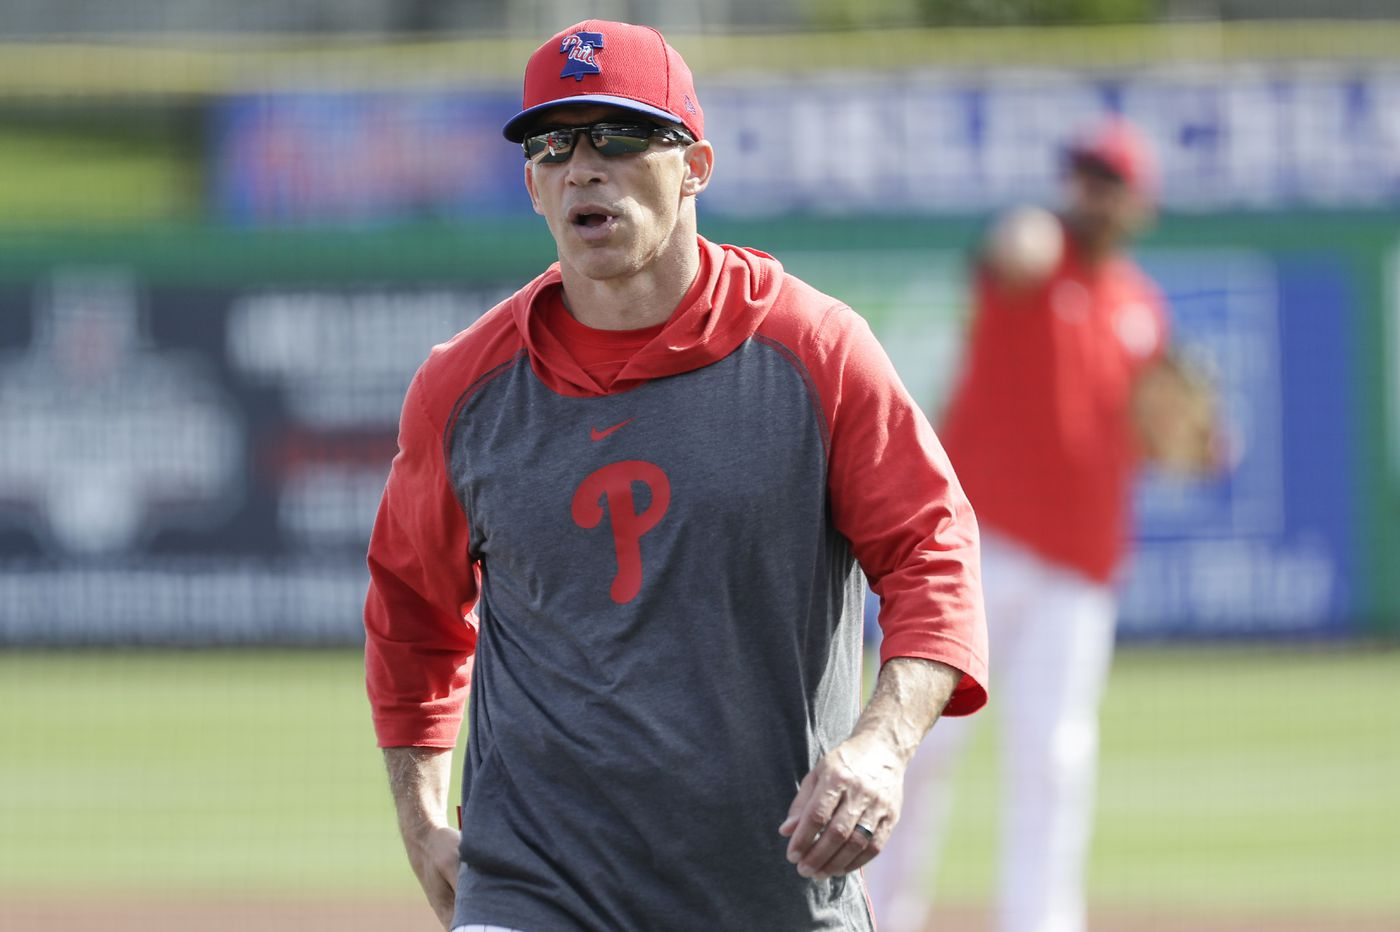 Phillies manager Joe Girardi returning to broadcasting, at least during spring training